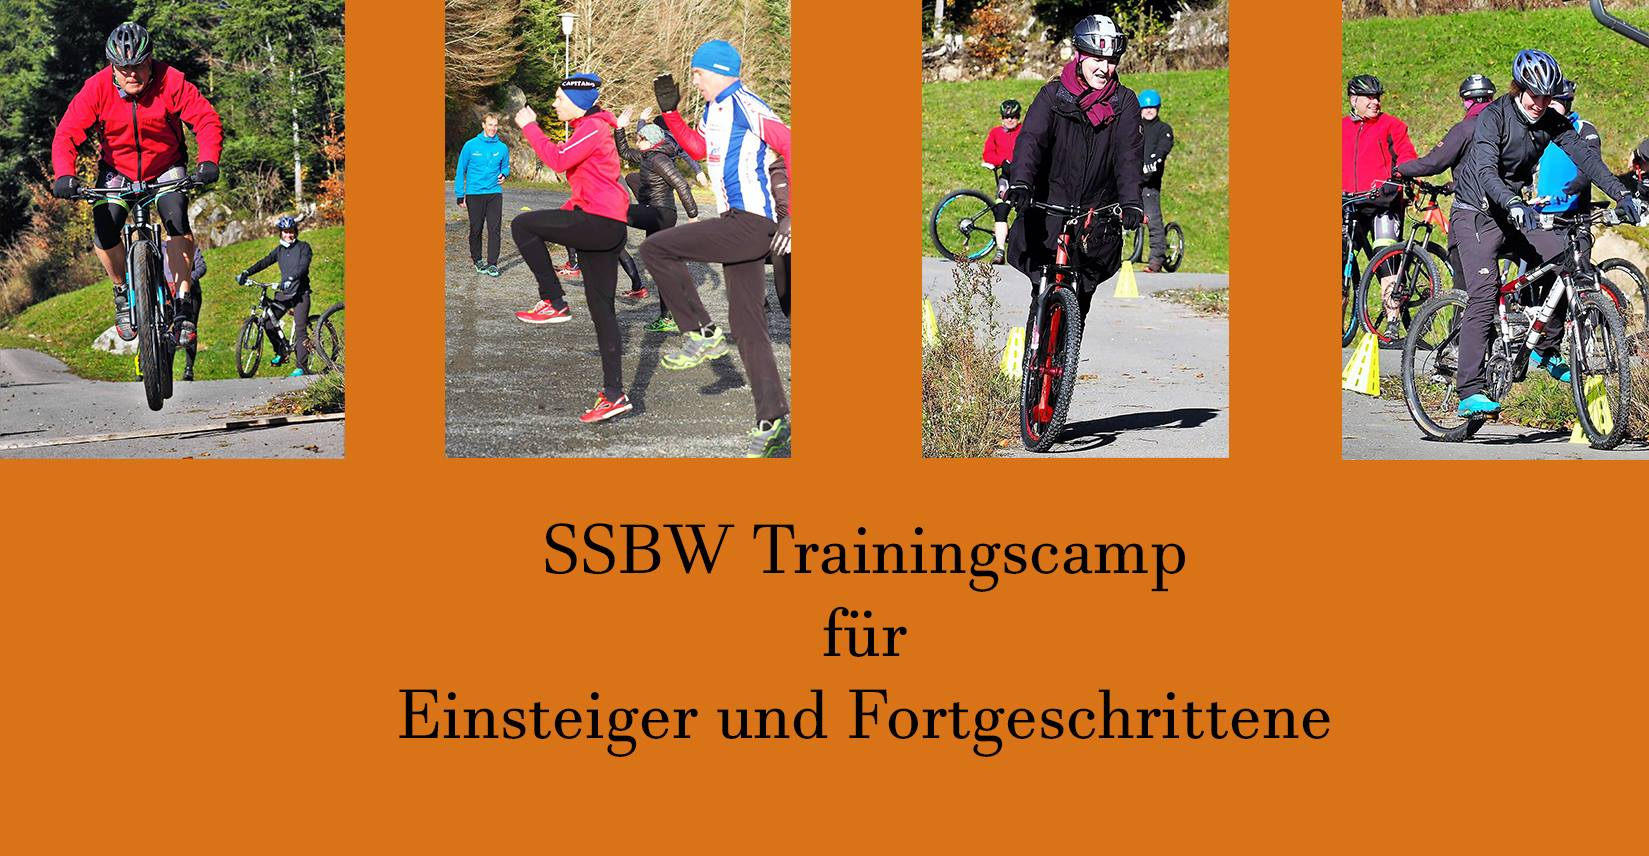 SSBW Trainingscamp 10 2018 Alex 1